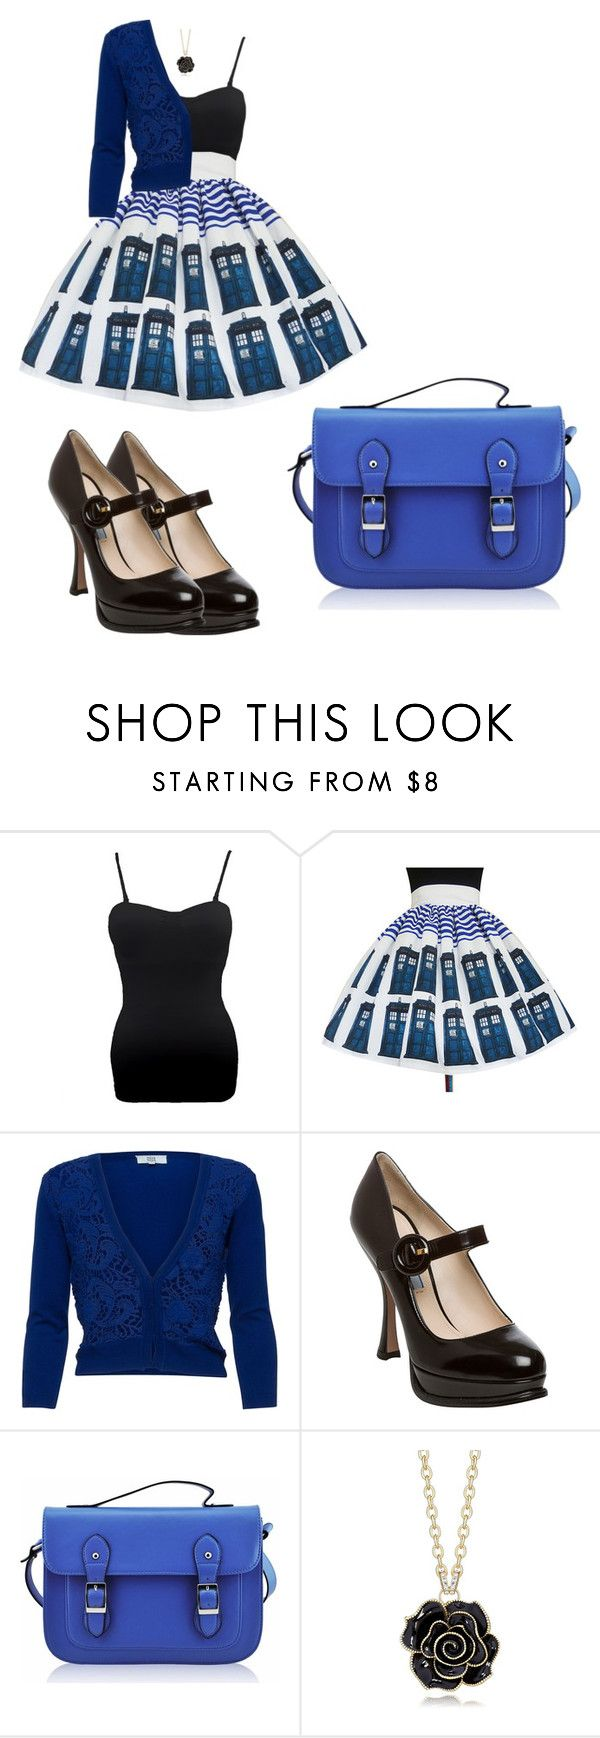 """""""Charlie checks in"""" by lorelei-tempest ❤ liked on Polyvore featuring Noa Noa, Prada and FC Select Vegan Bags"""